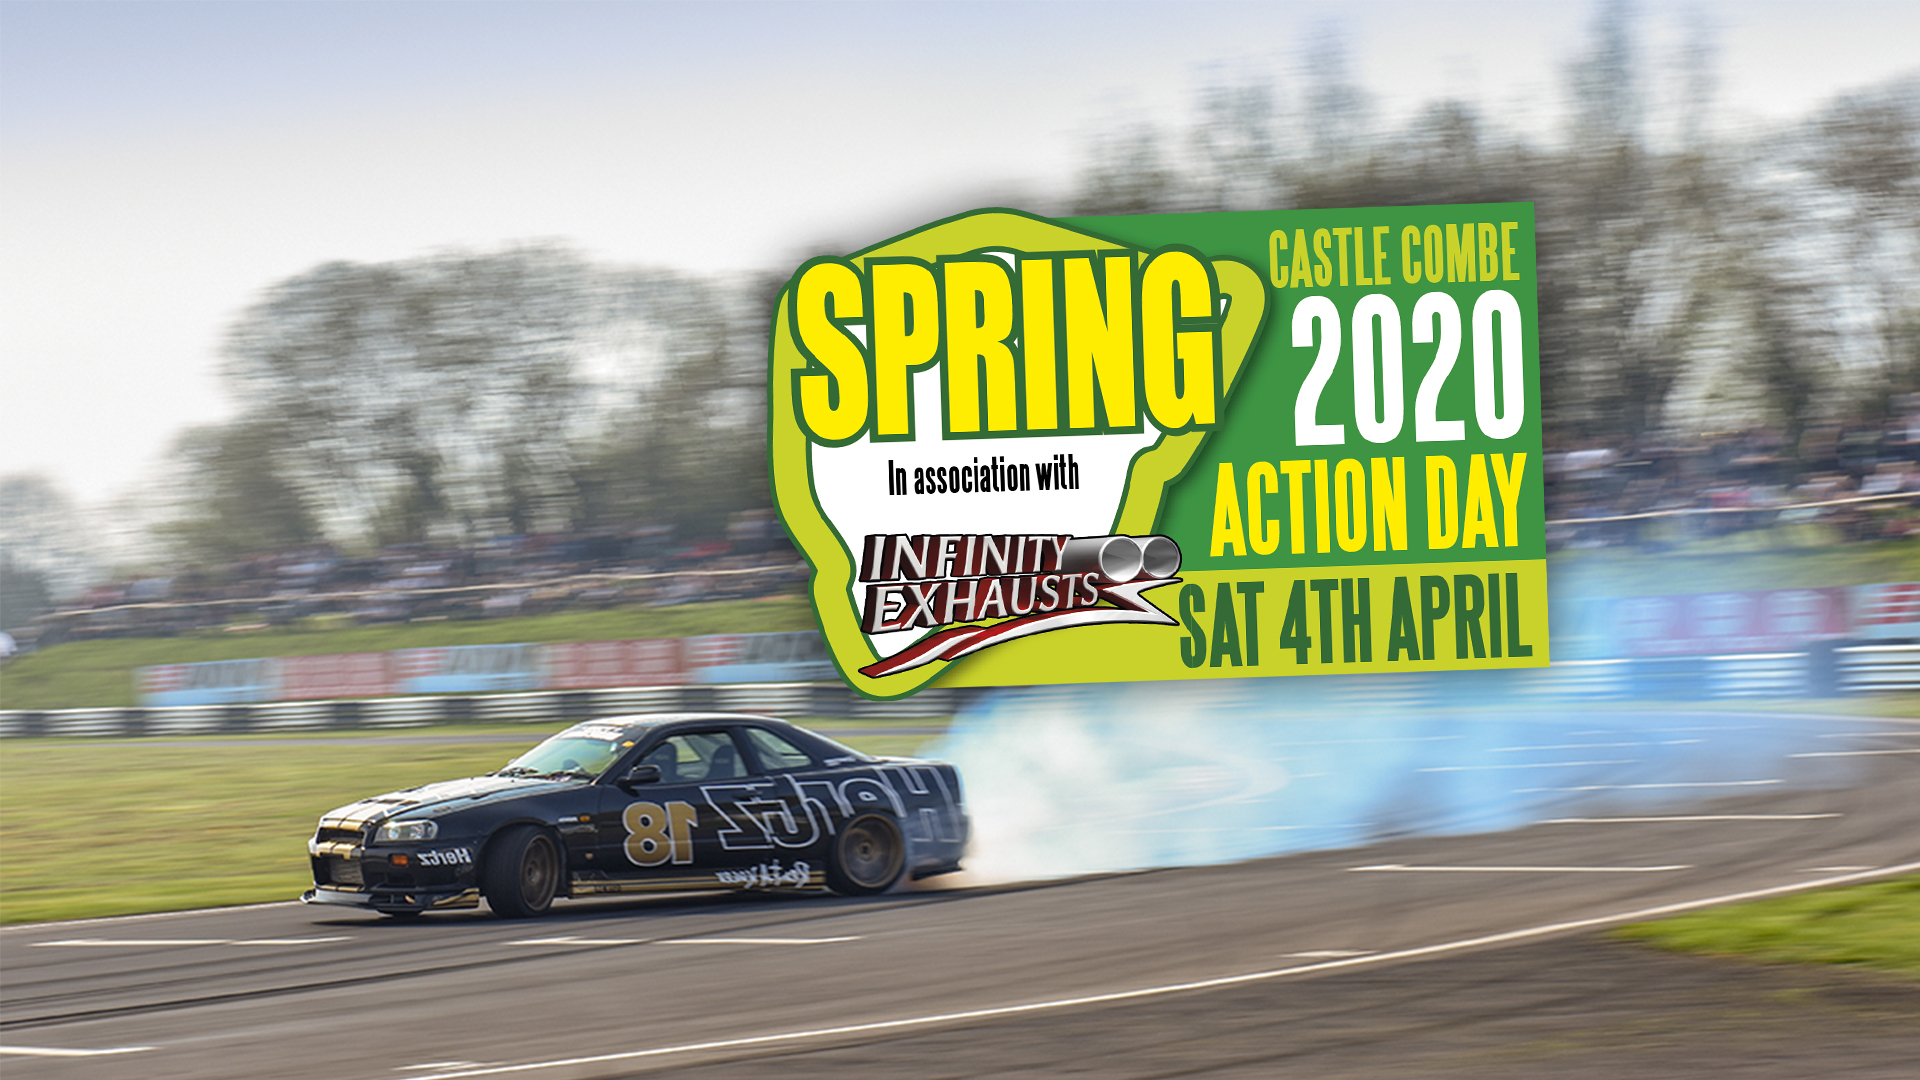 2020 SPRING ACTION DAY DATE REVEALED – 4 APRIL